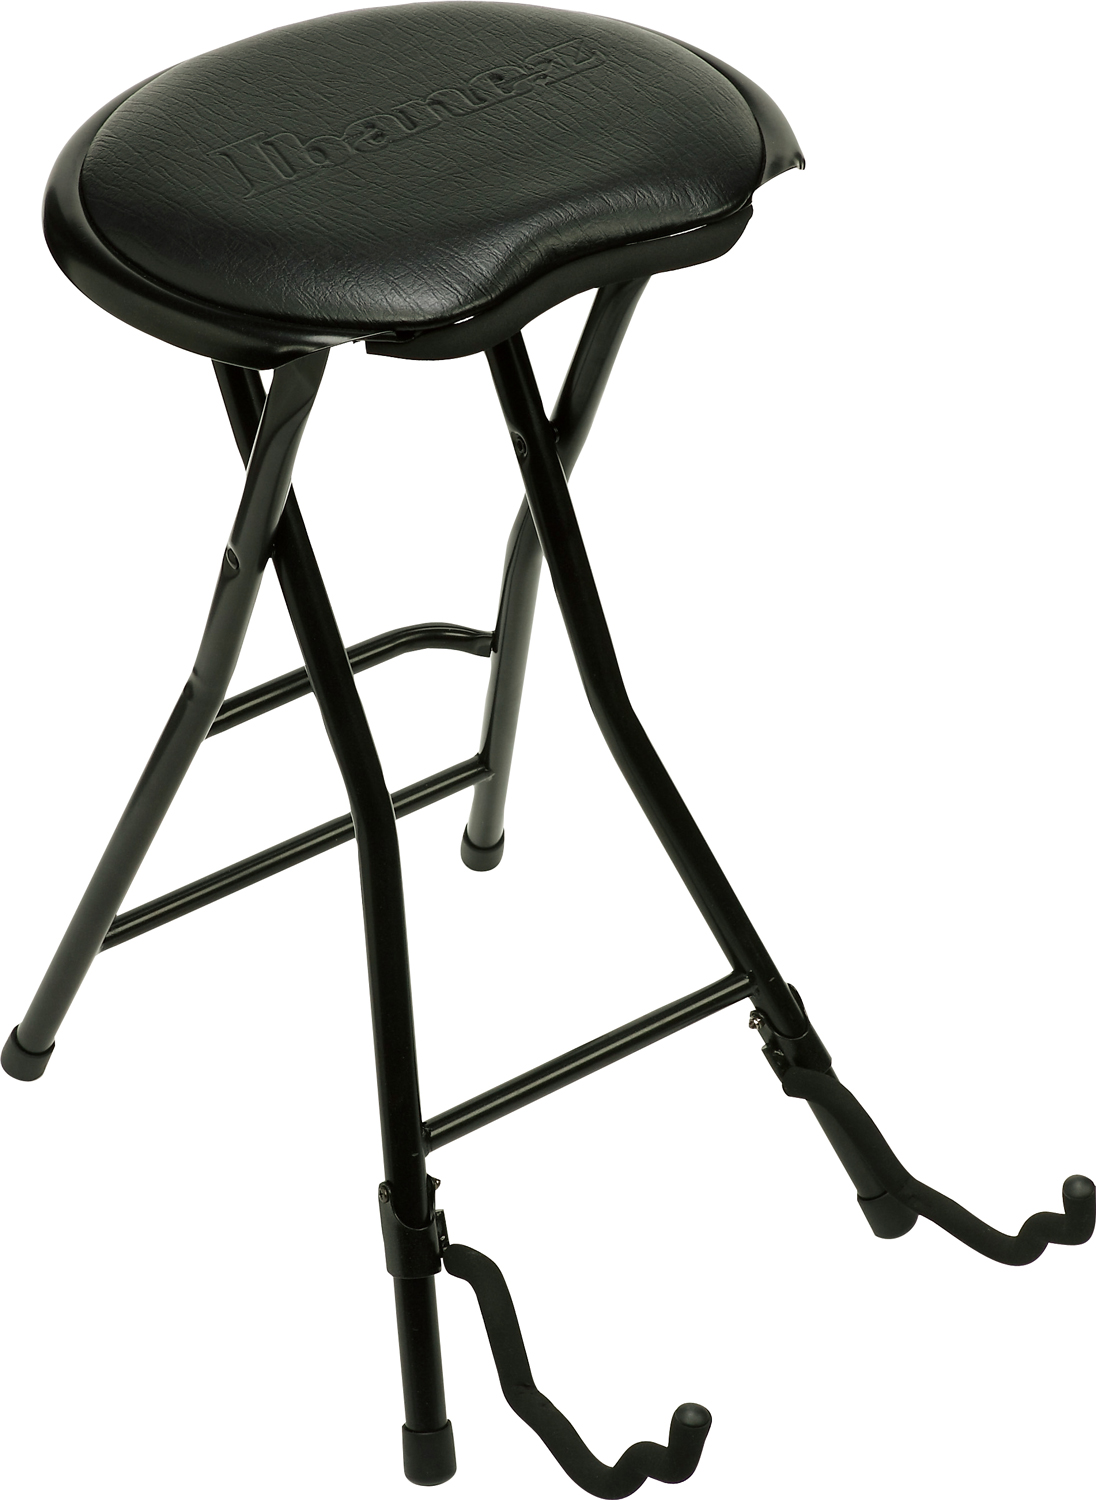 Ibanez Chair Guitar Stand  sc 1 st  MusicWorks : guitar stools and chairs - islam-shia.org